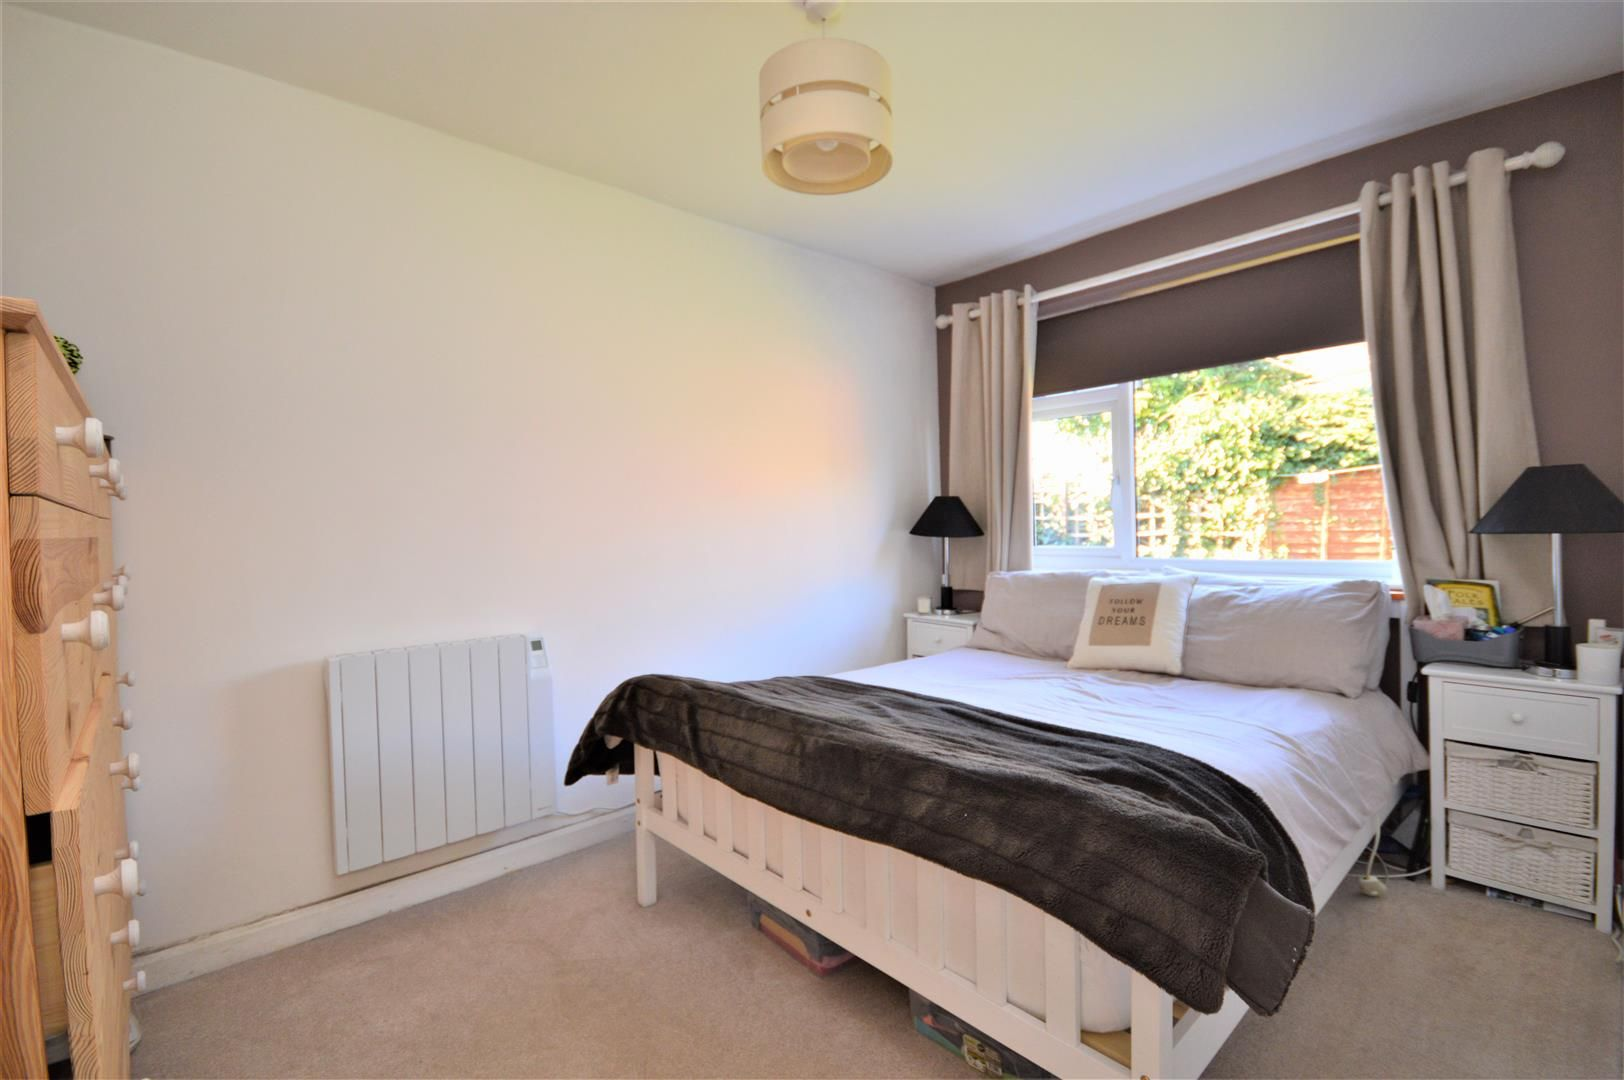 2 bed semi-detached-bungalow for sale in Marden  - Property Image 4